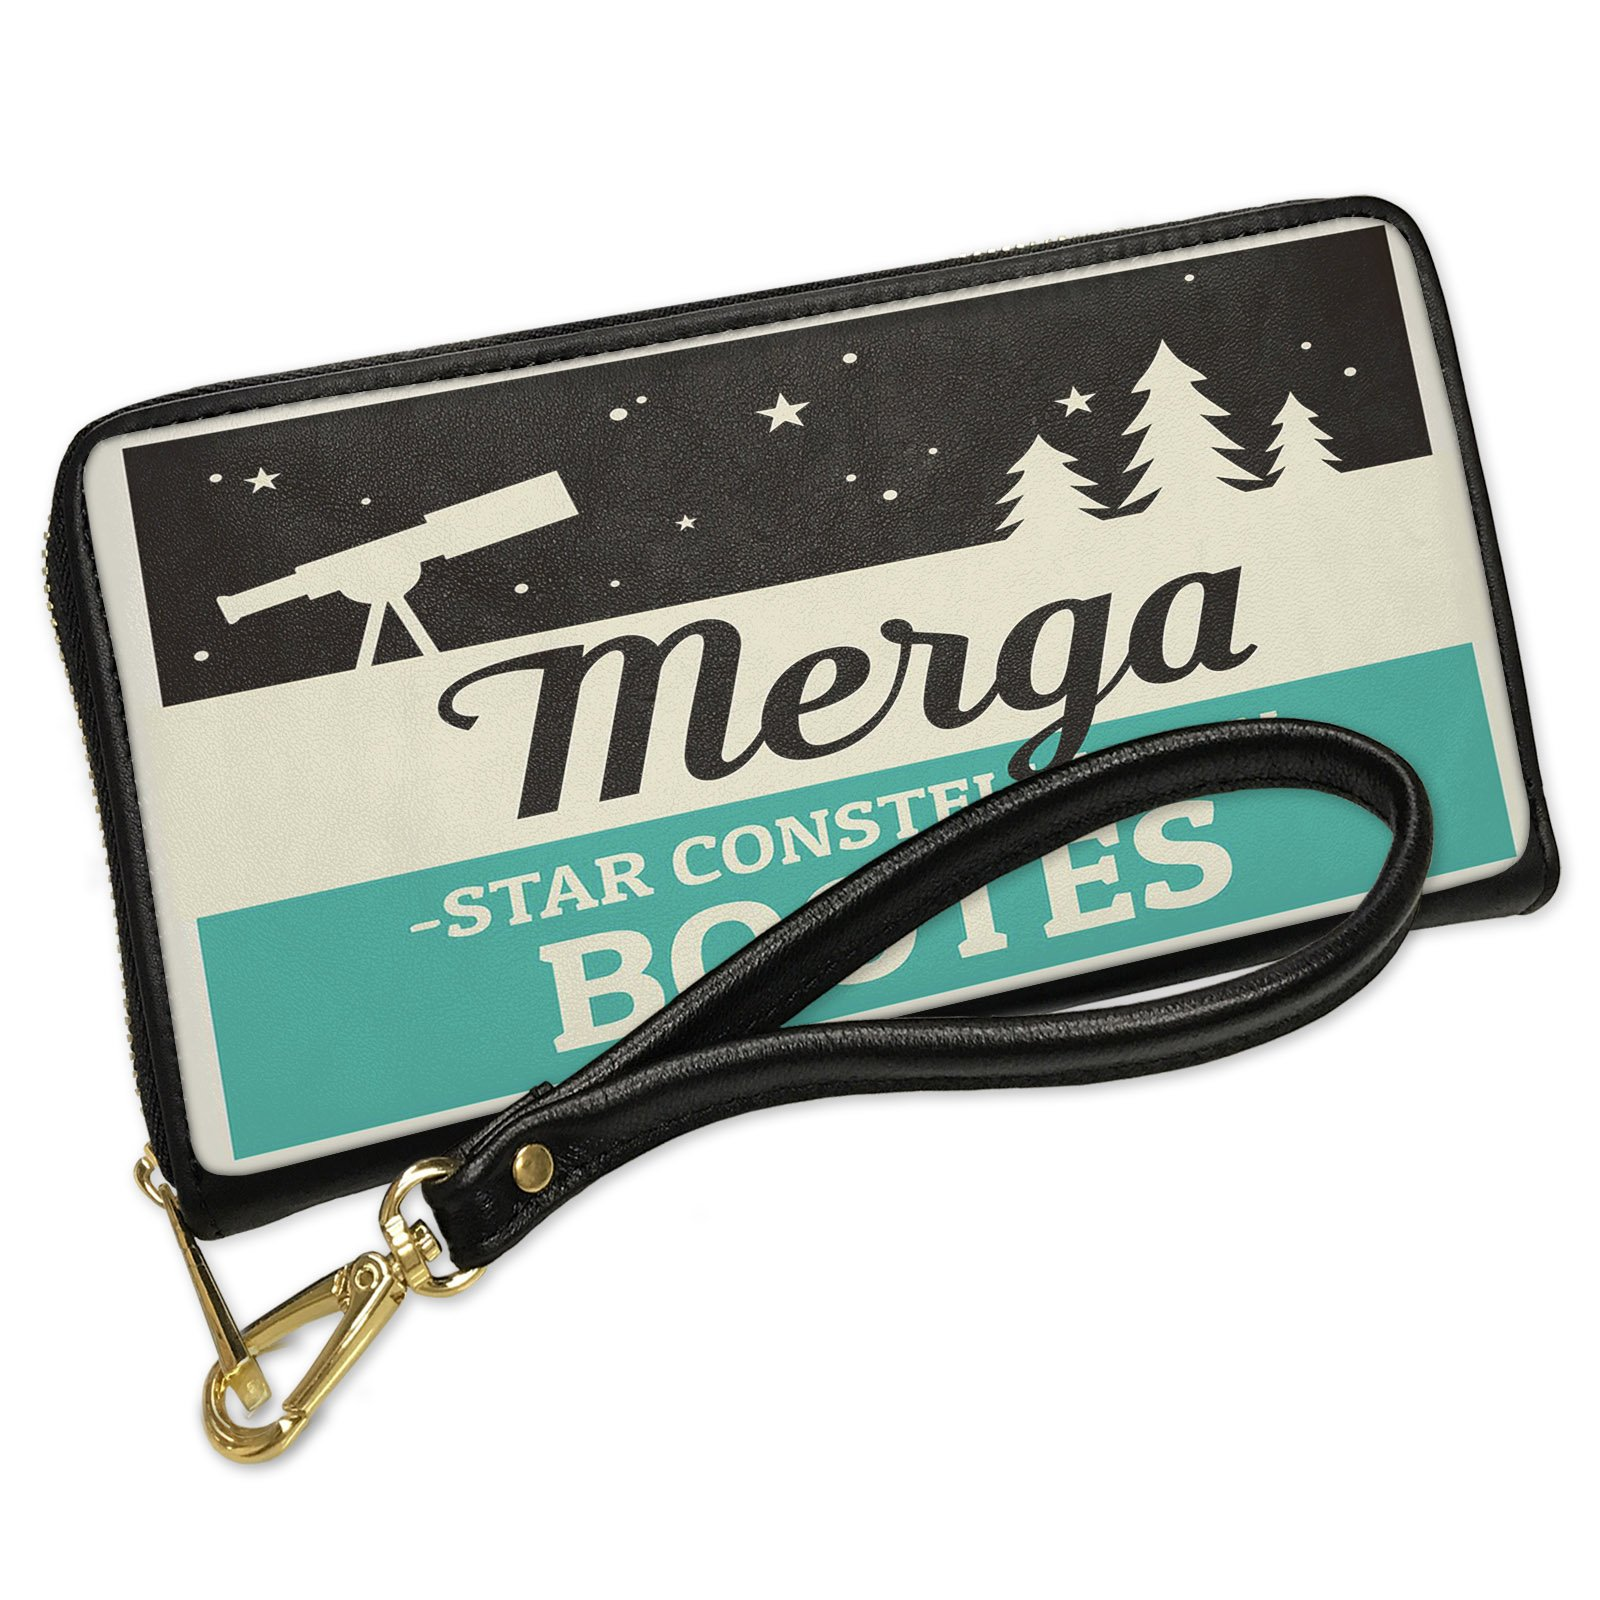 Wallet Clutch Star Constellation Name Bootes - Merga with Removable Wristlet Strap Neonblond